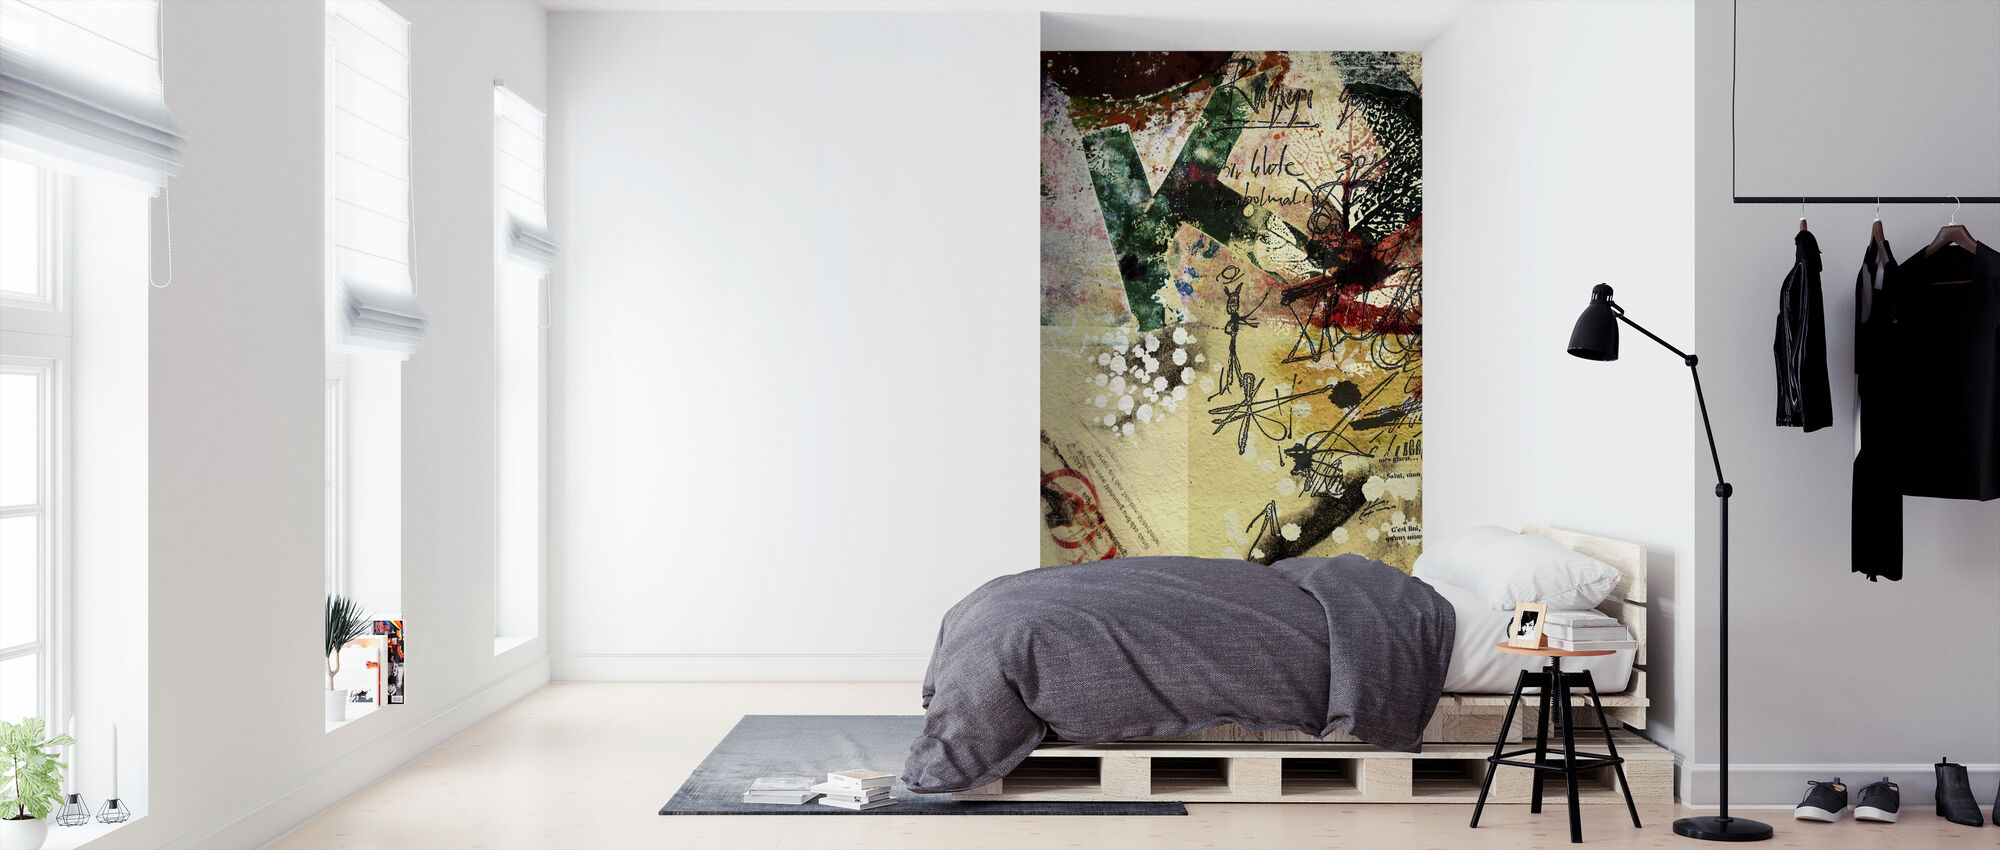 Poster Collage - Wallpaper - Bedroom